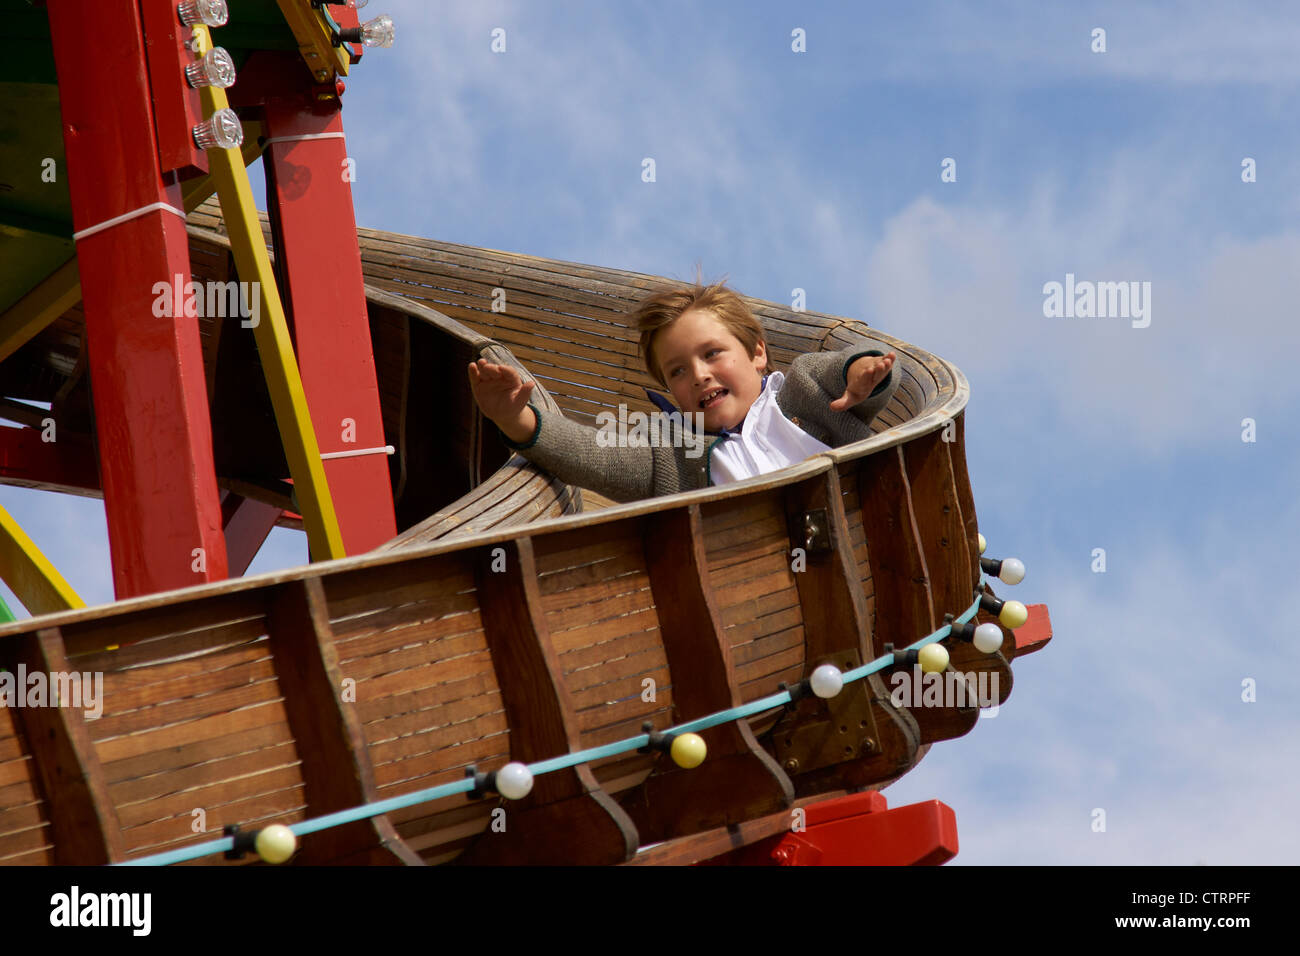 Ride on the slide - Stock Image